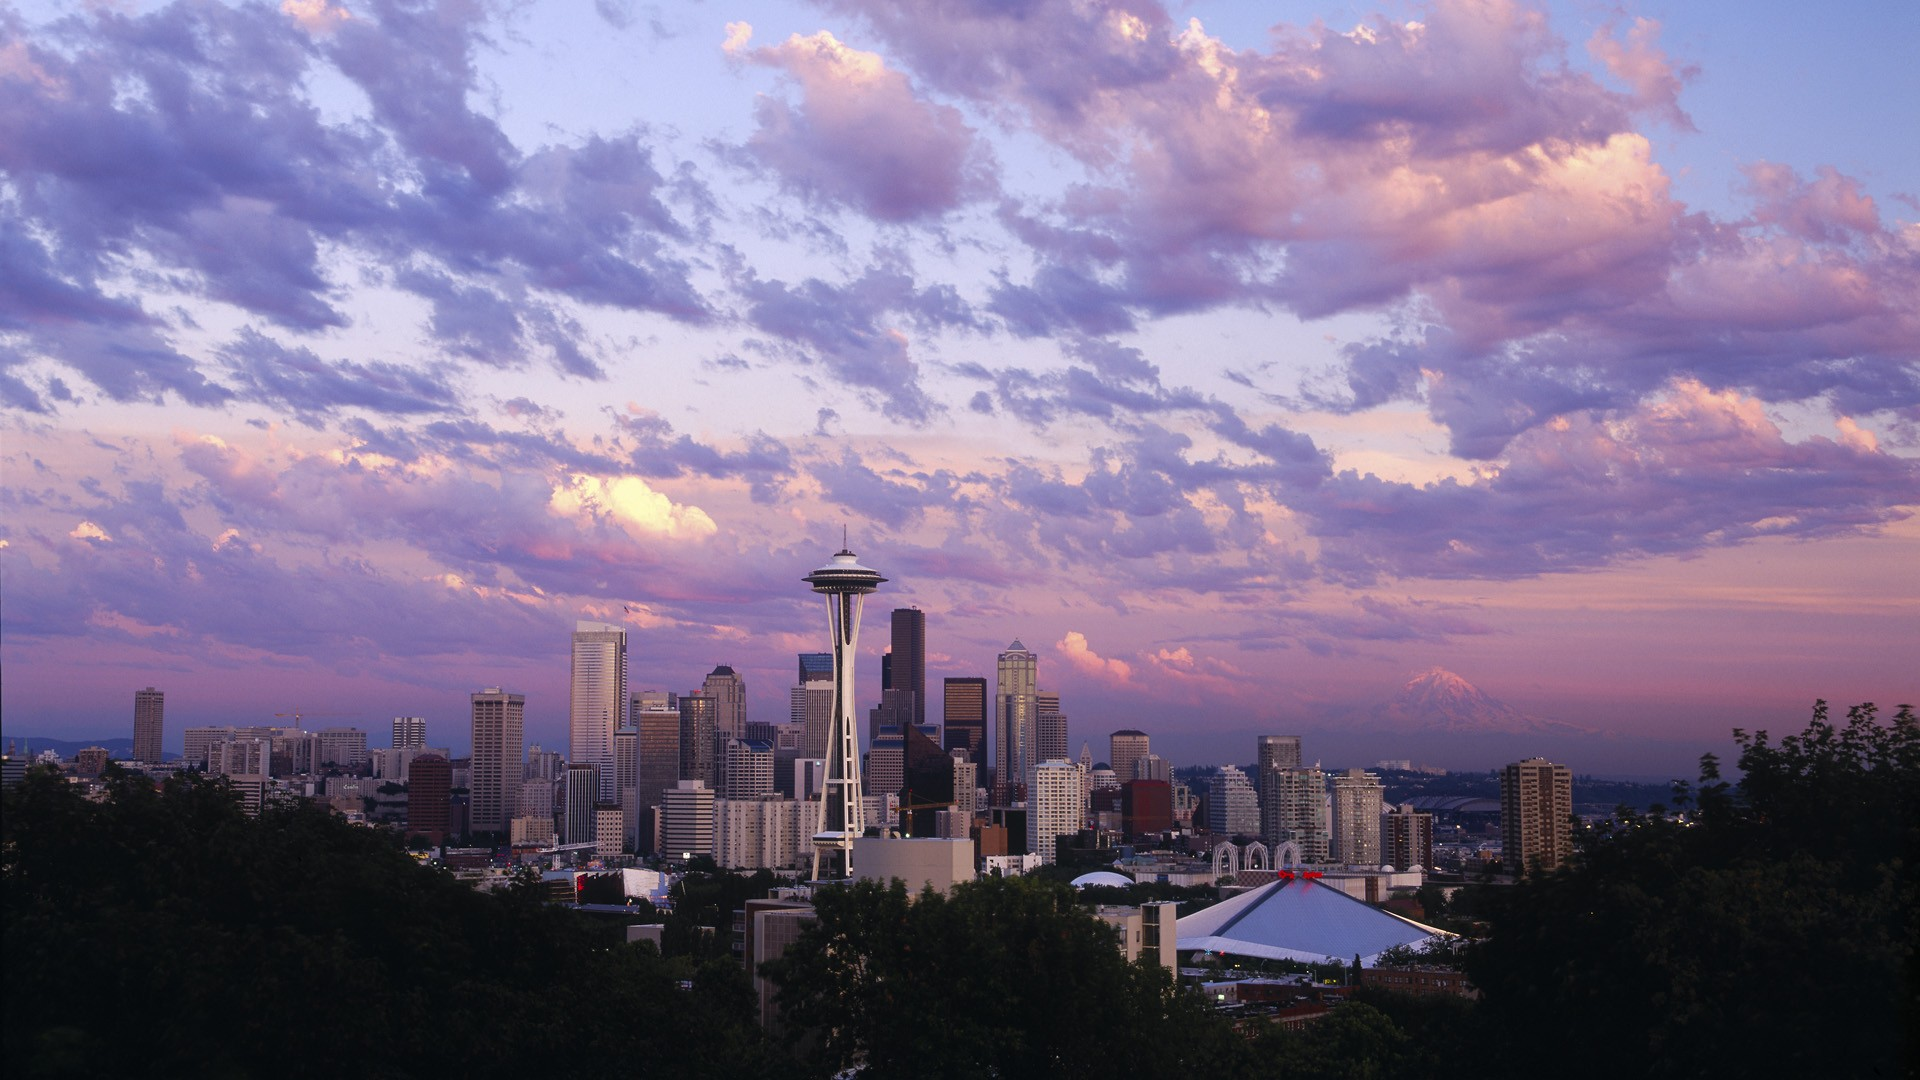 Beautiful panorama of the city of Seattle, Washington, USA